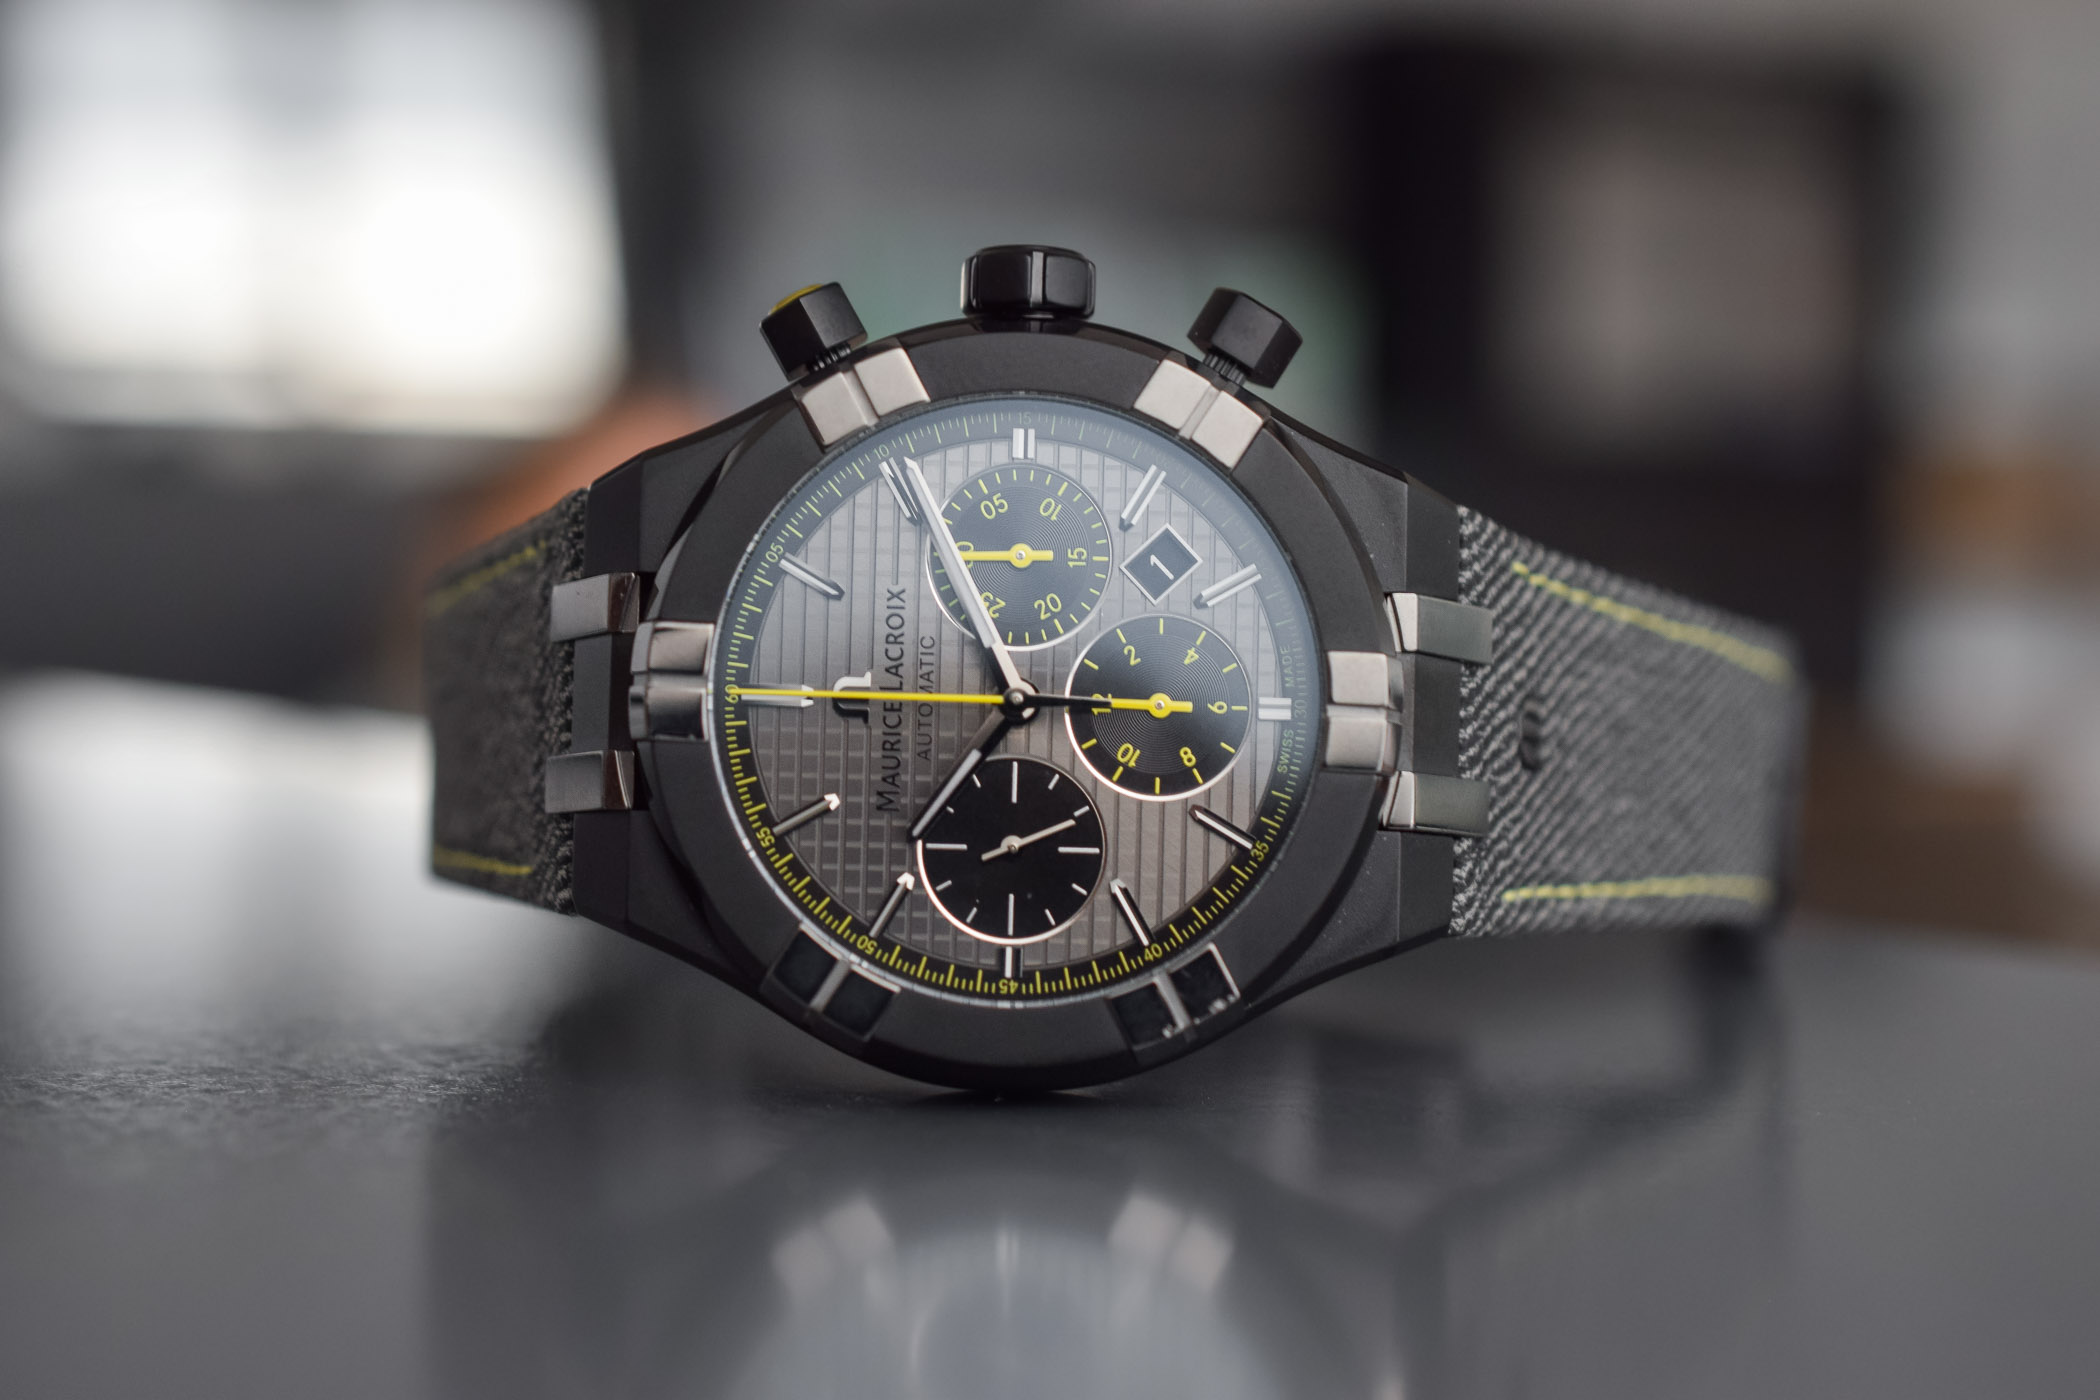 Maurice Lacroix Aikon Chronograph Automatic Chase Your Watch limited edition